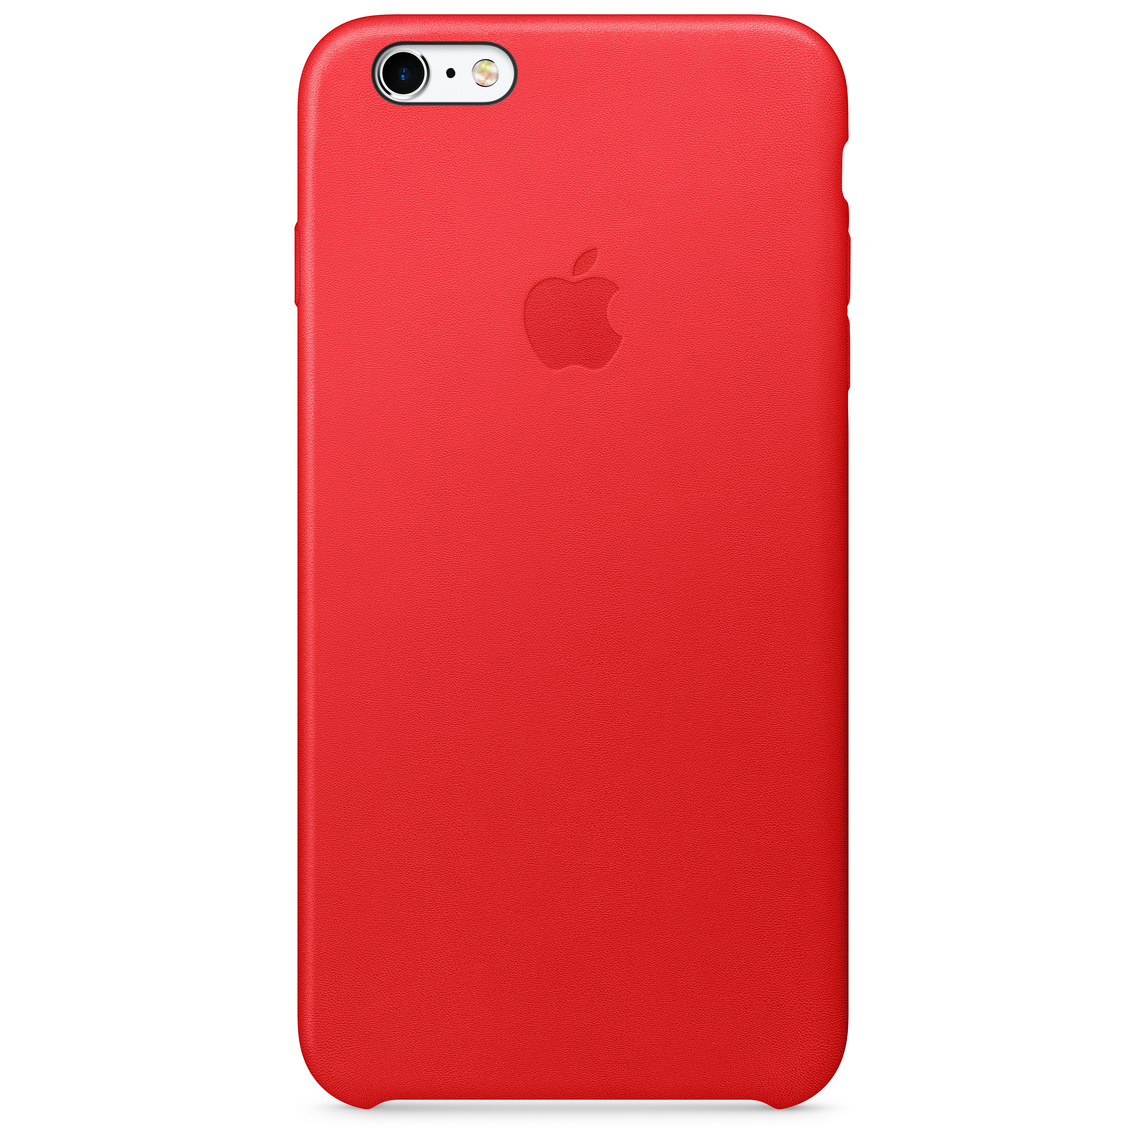 new concept 5e770 856f5 iPhone 6 Plus / 6s Plus Leather Case - (PRODUCT)RED